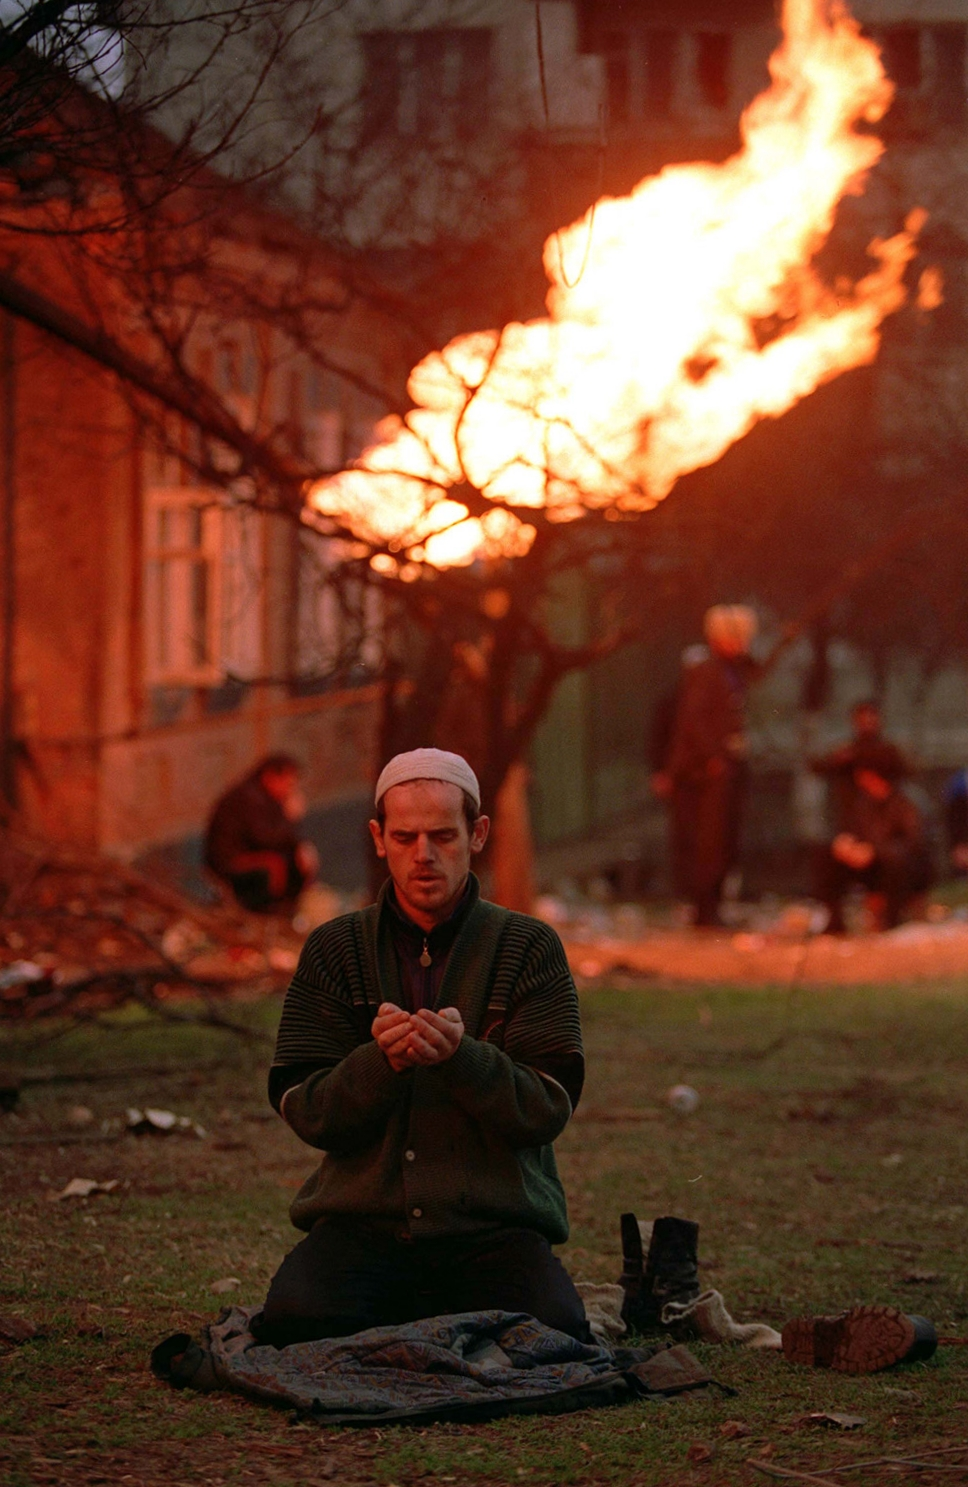 A Chechen civilian prays in Grozny, January 1995. The flame in the background is coming from a gas pipeline which was hit by shrapnel